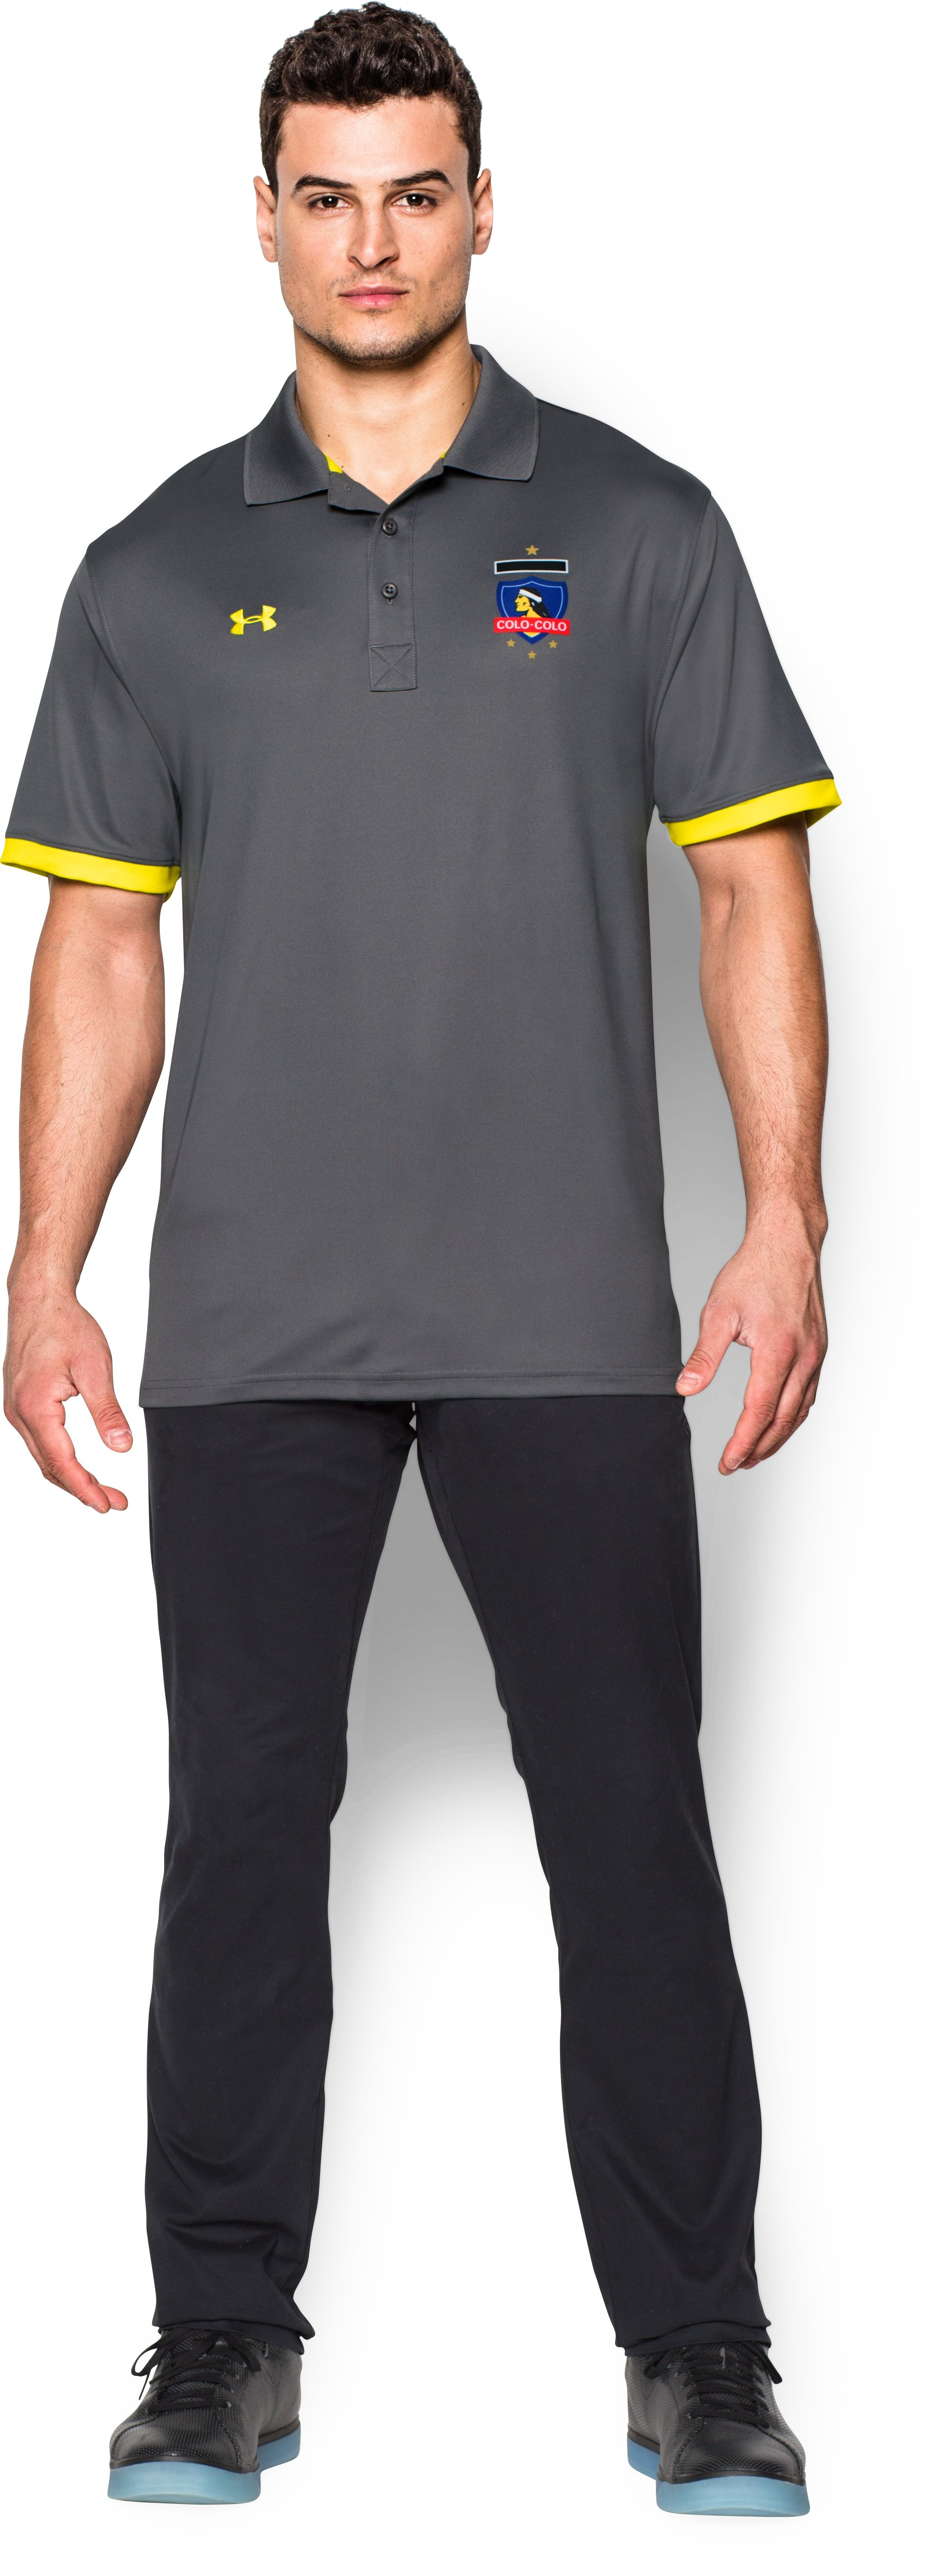 Men's Colo-Colo Polo, Graphite